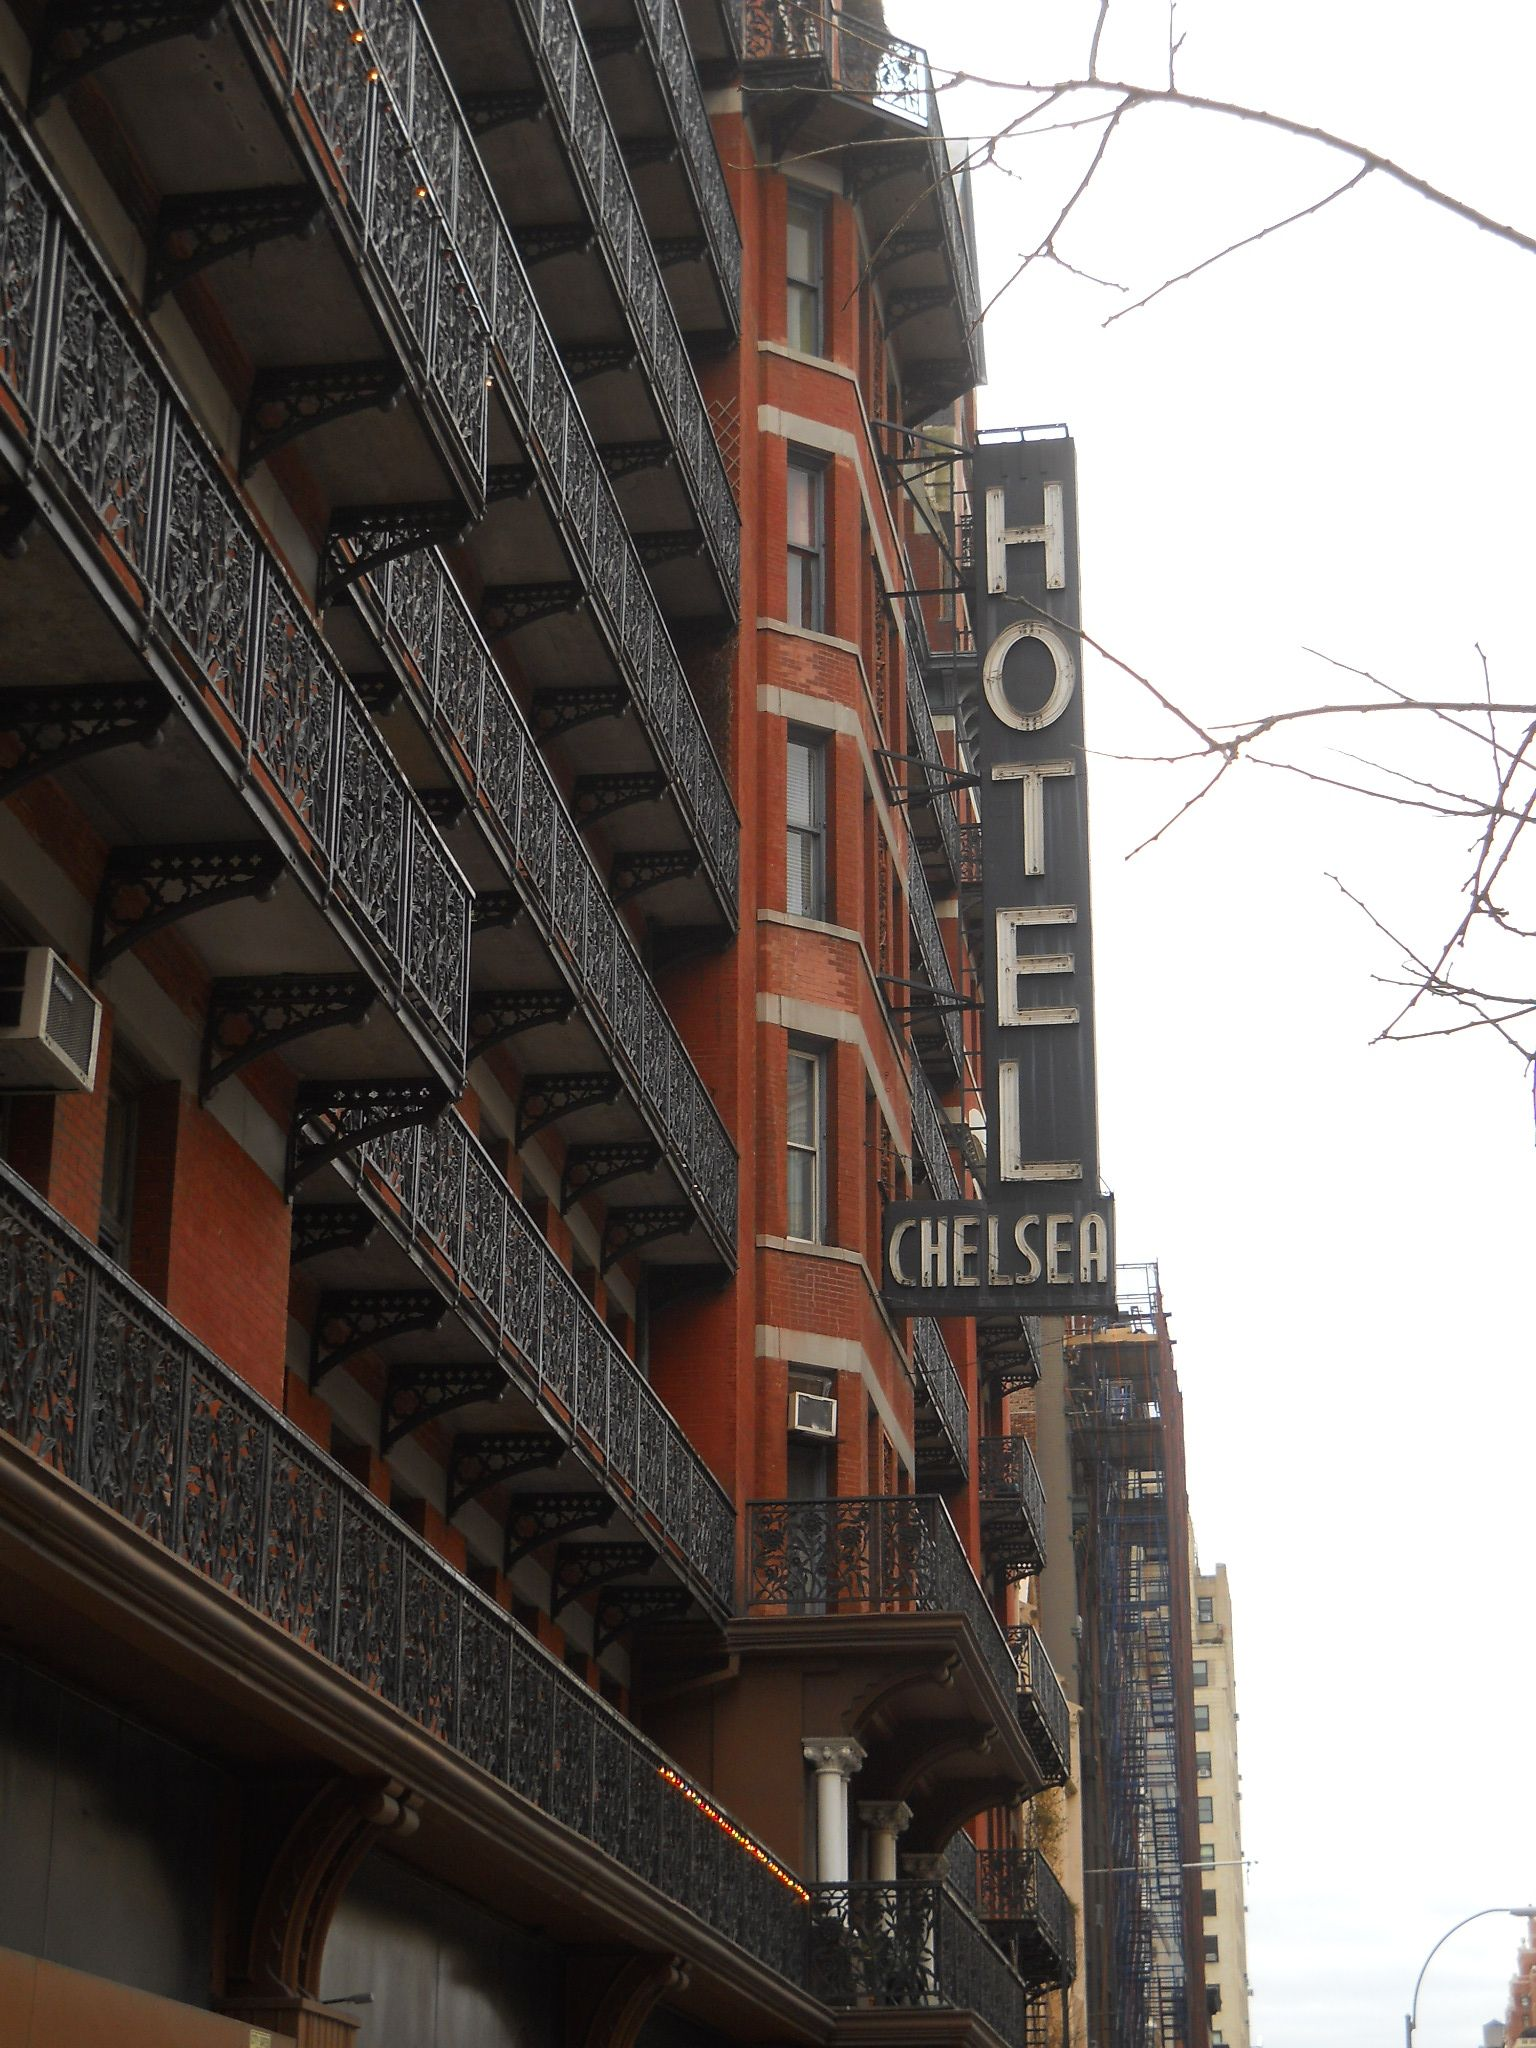 Chelsea Hotel York City Repinned Stephaan